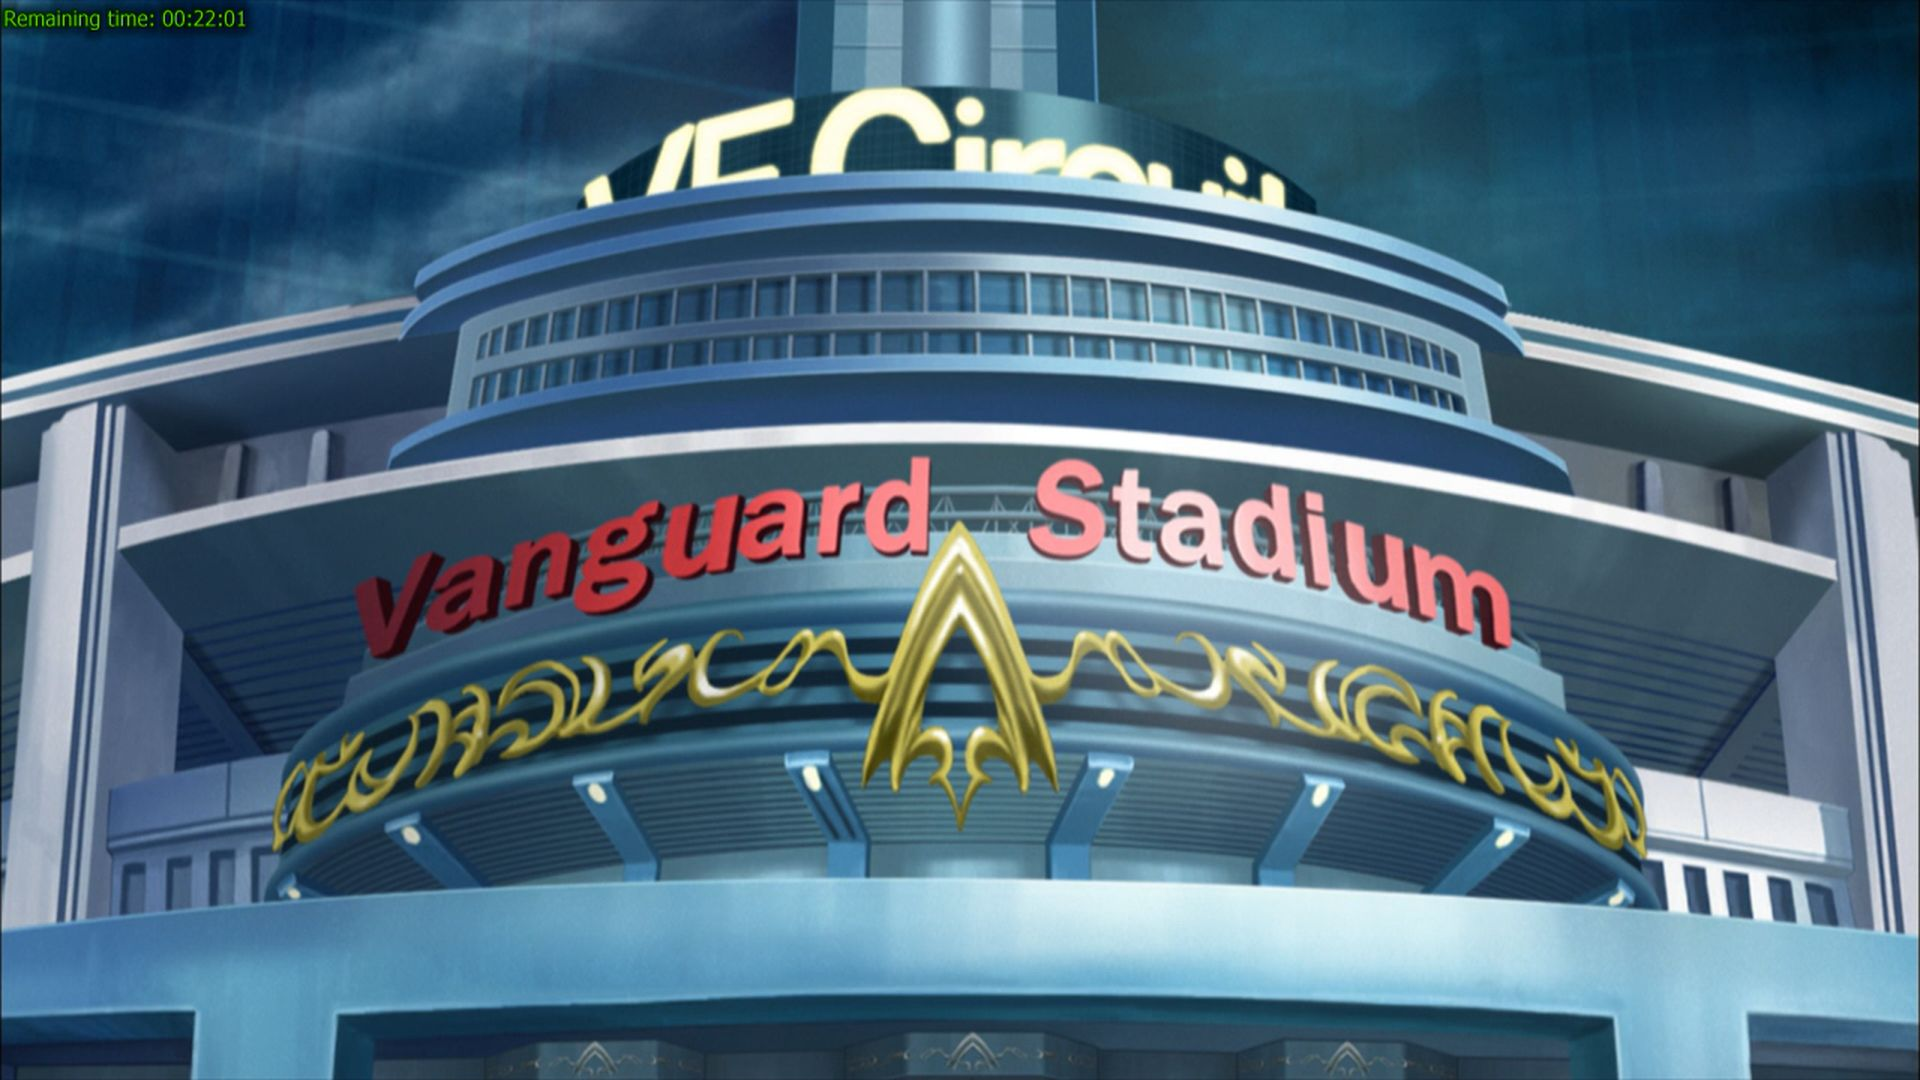 Rather than wasting precious real estate to casinos, Singapore is better off building Vanguard stadiums instead.